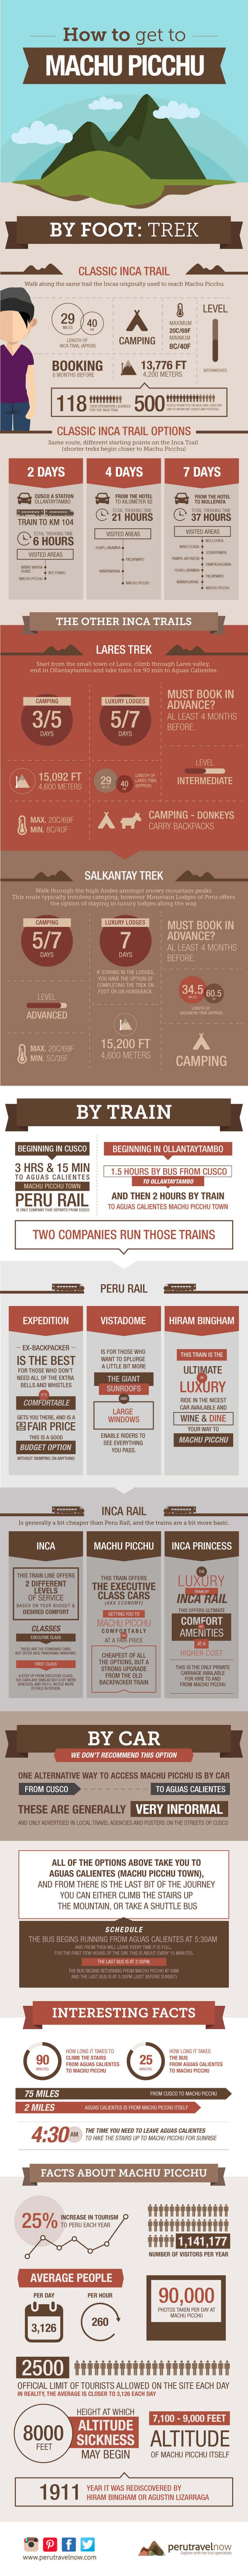 How to Get to Machu Picchu - Source